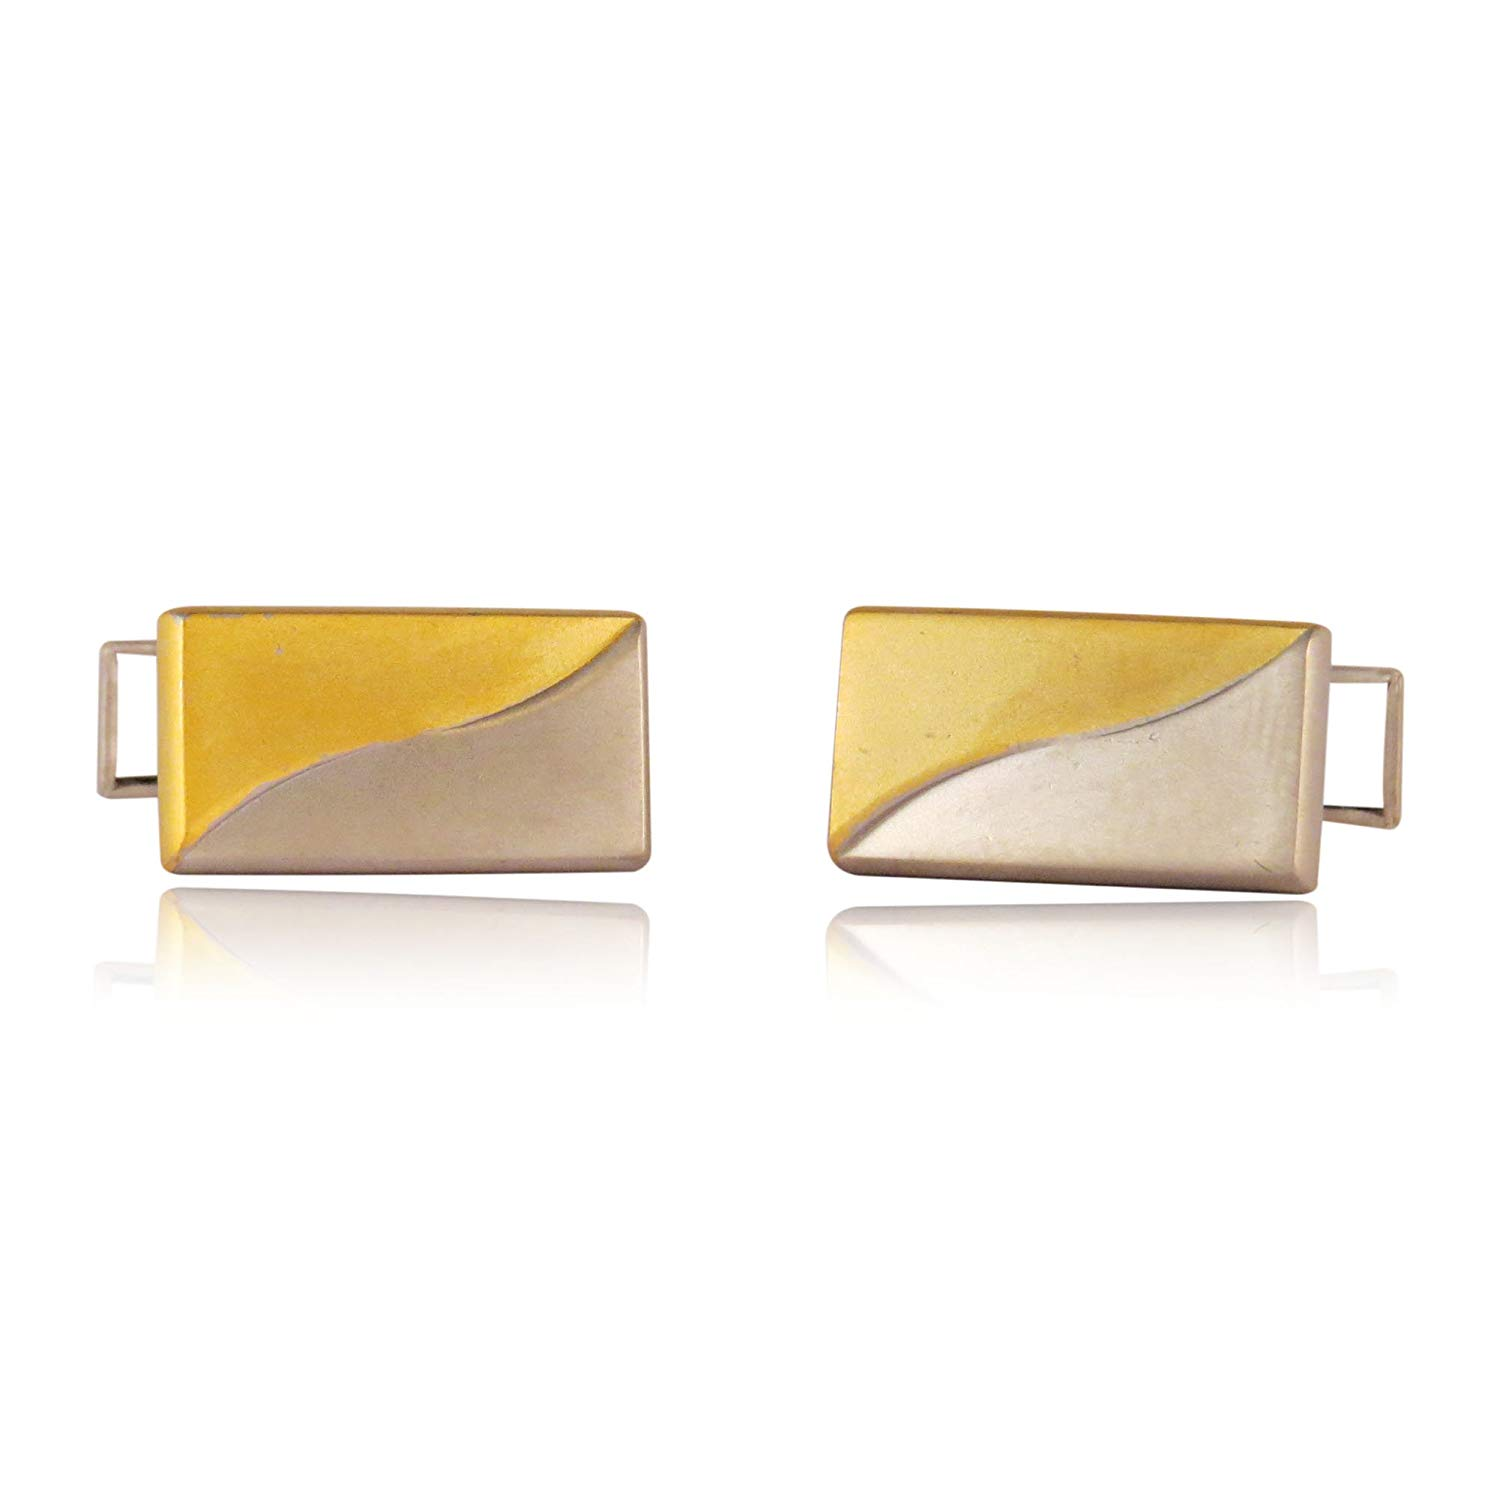 Cuff-Daddy Versatile Gold & Silver Two-Tone Cufflinks with Matte Finish with Presentation Box